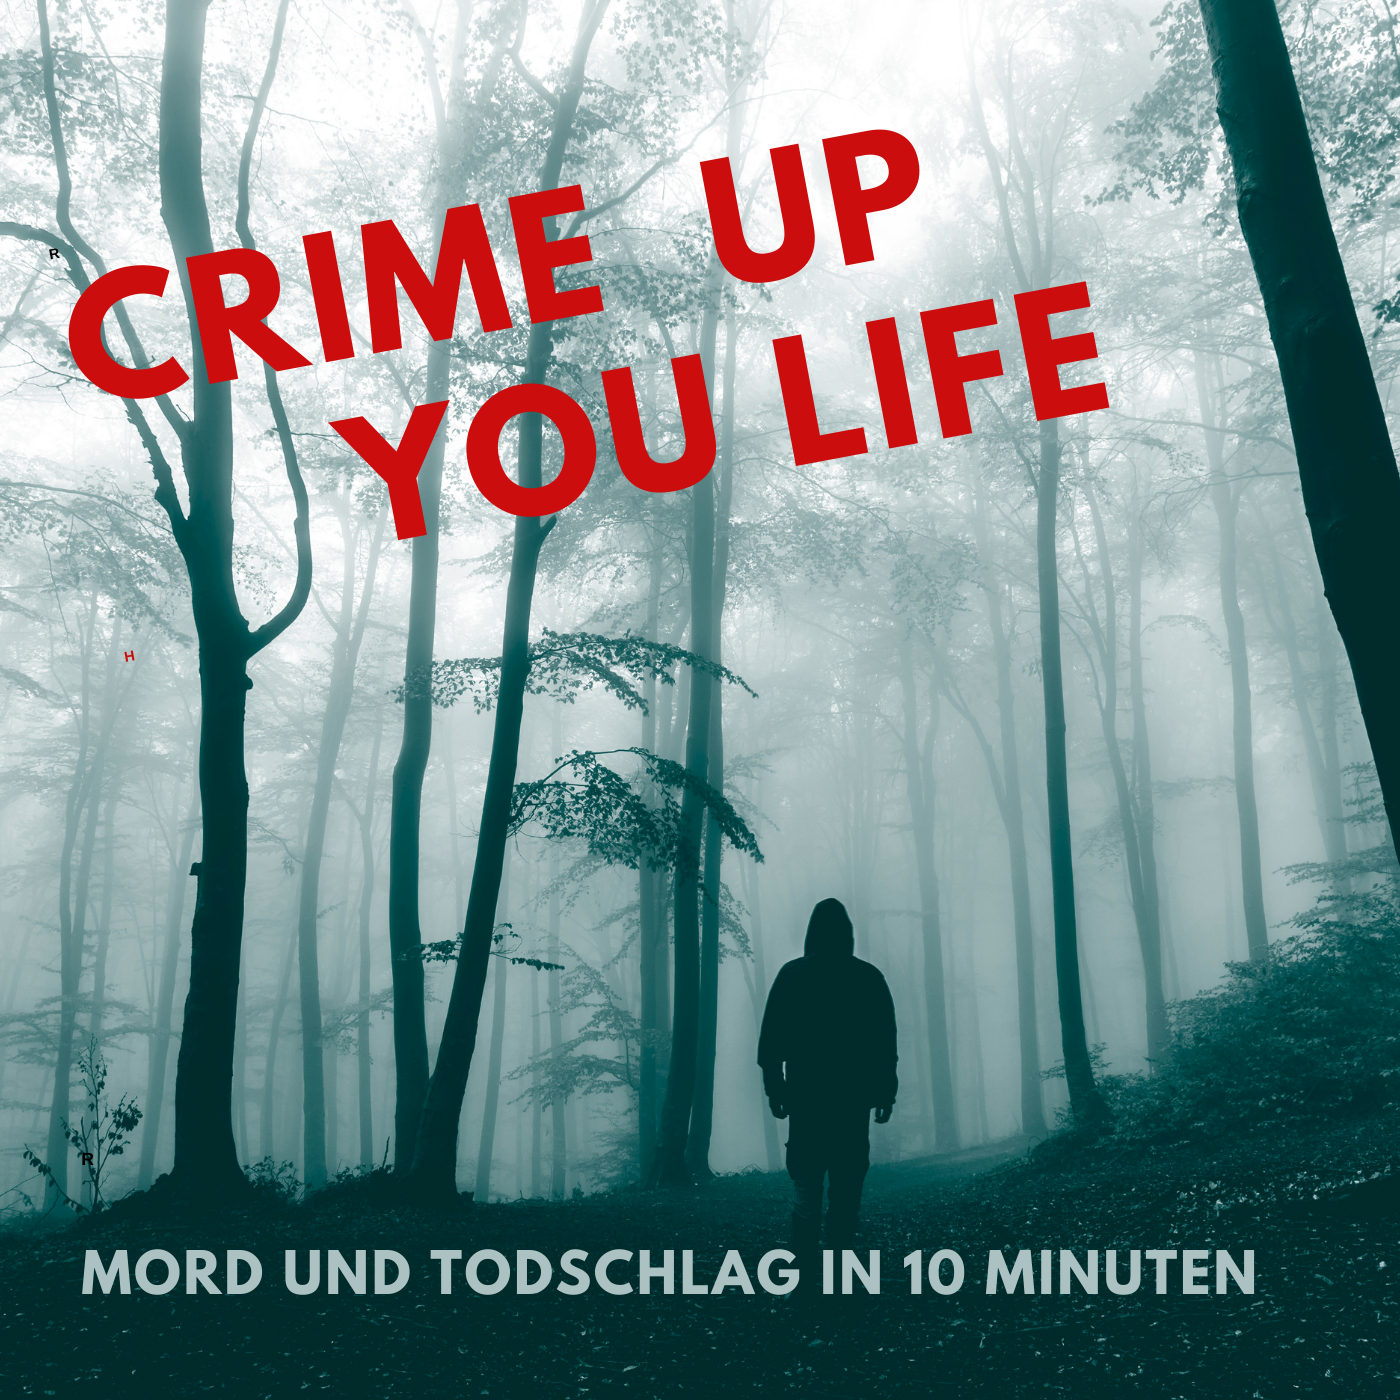 Crime up your Life - Mord und Totschlag in 20 Minuten